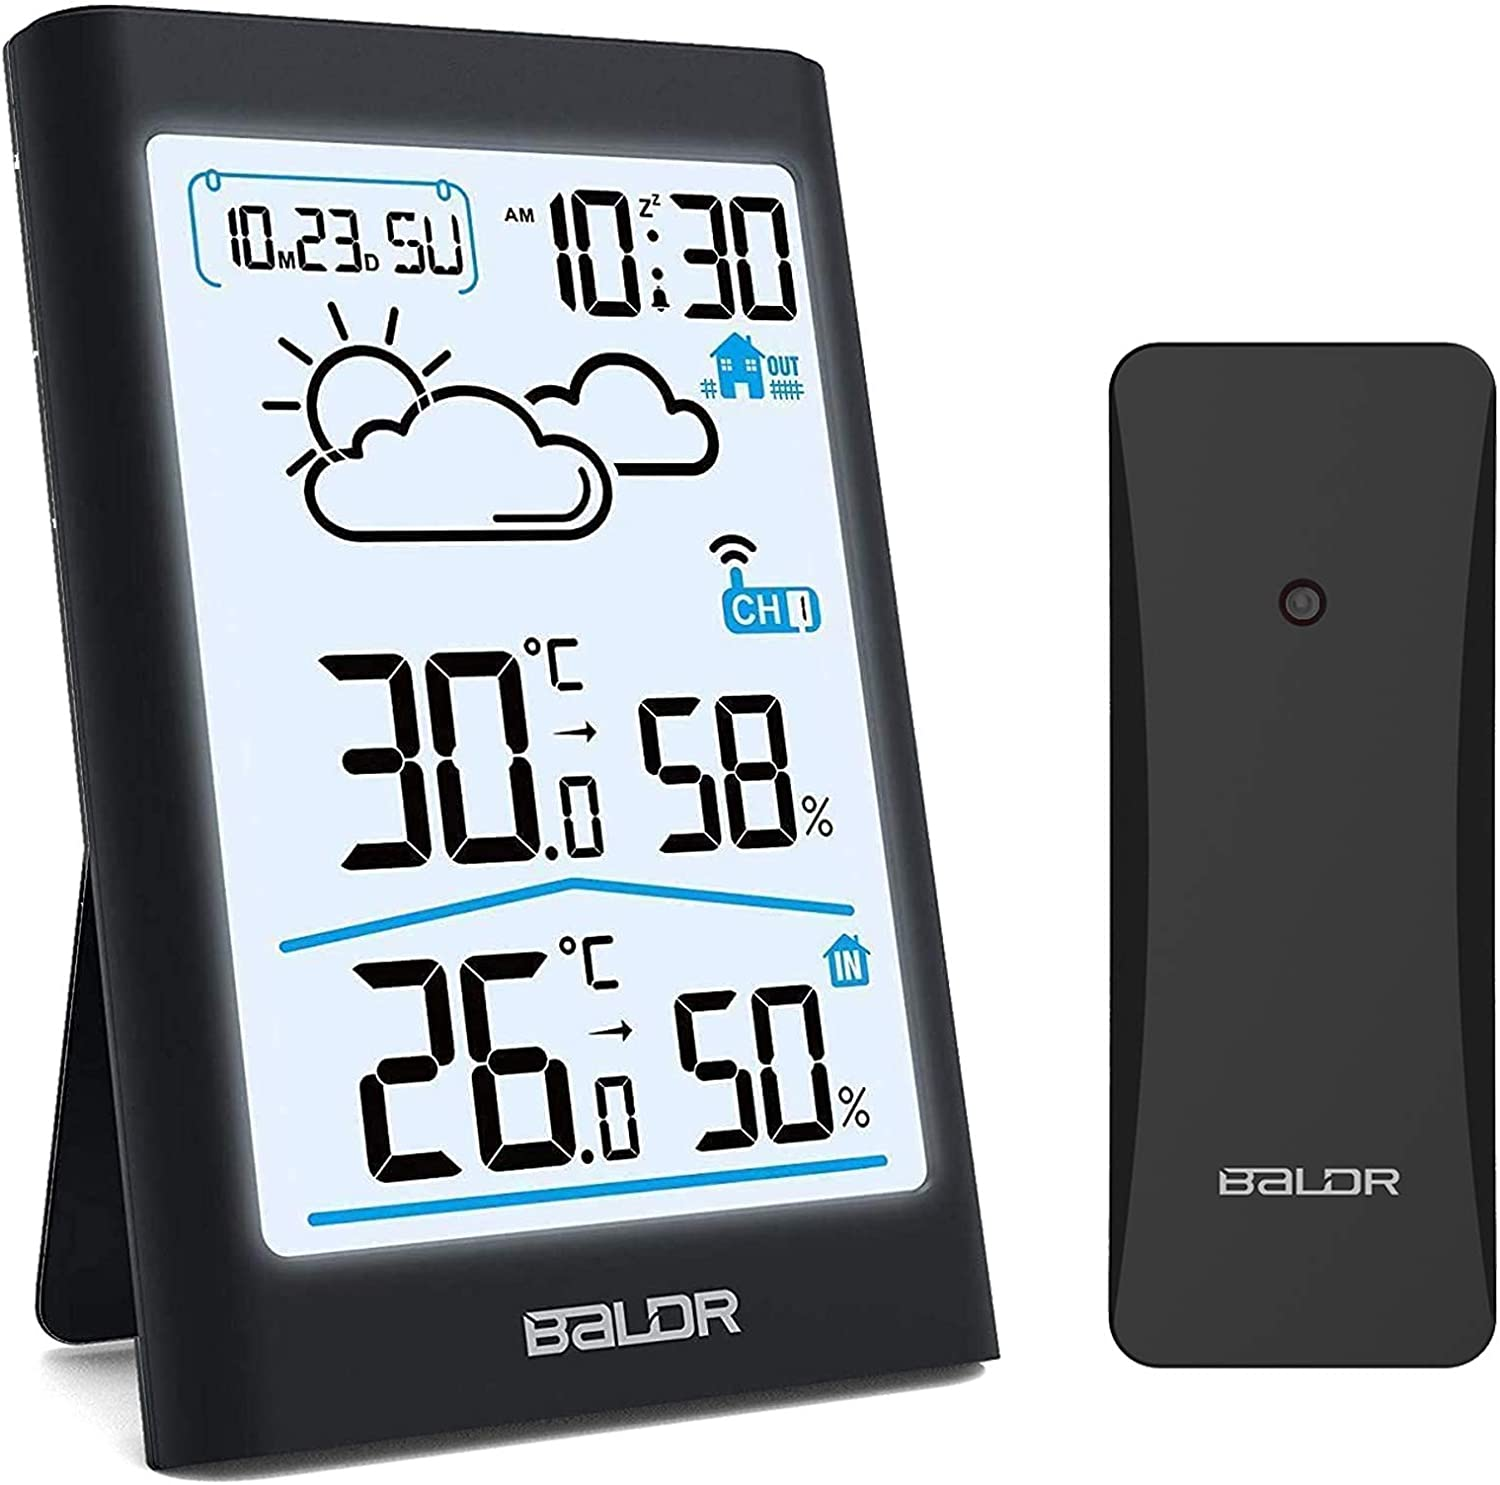 BALDR Weather Station, Wireless Digital Indoor Outdoor Thermometer Hygrometer with Backlight LCD Display and External Sensor, Ideal for Weather Forecast Monitoring, Alarm Clock (Black)